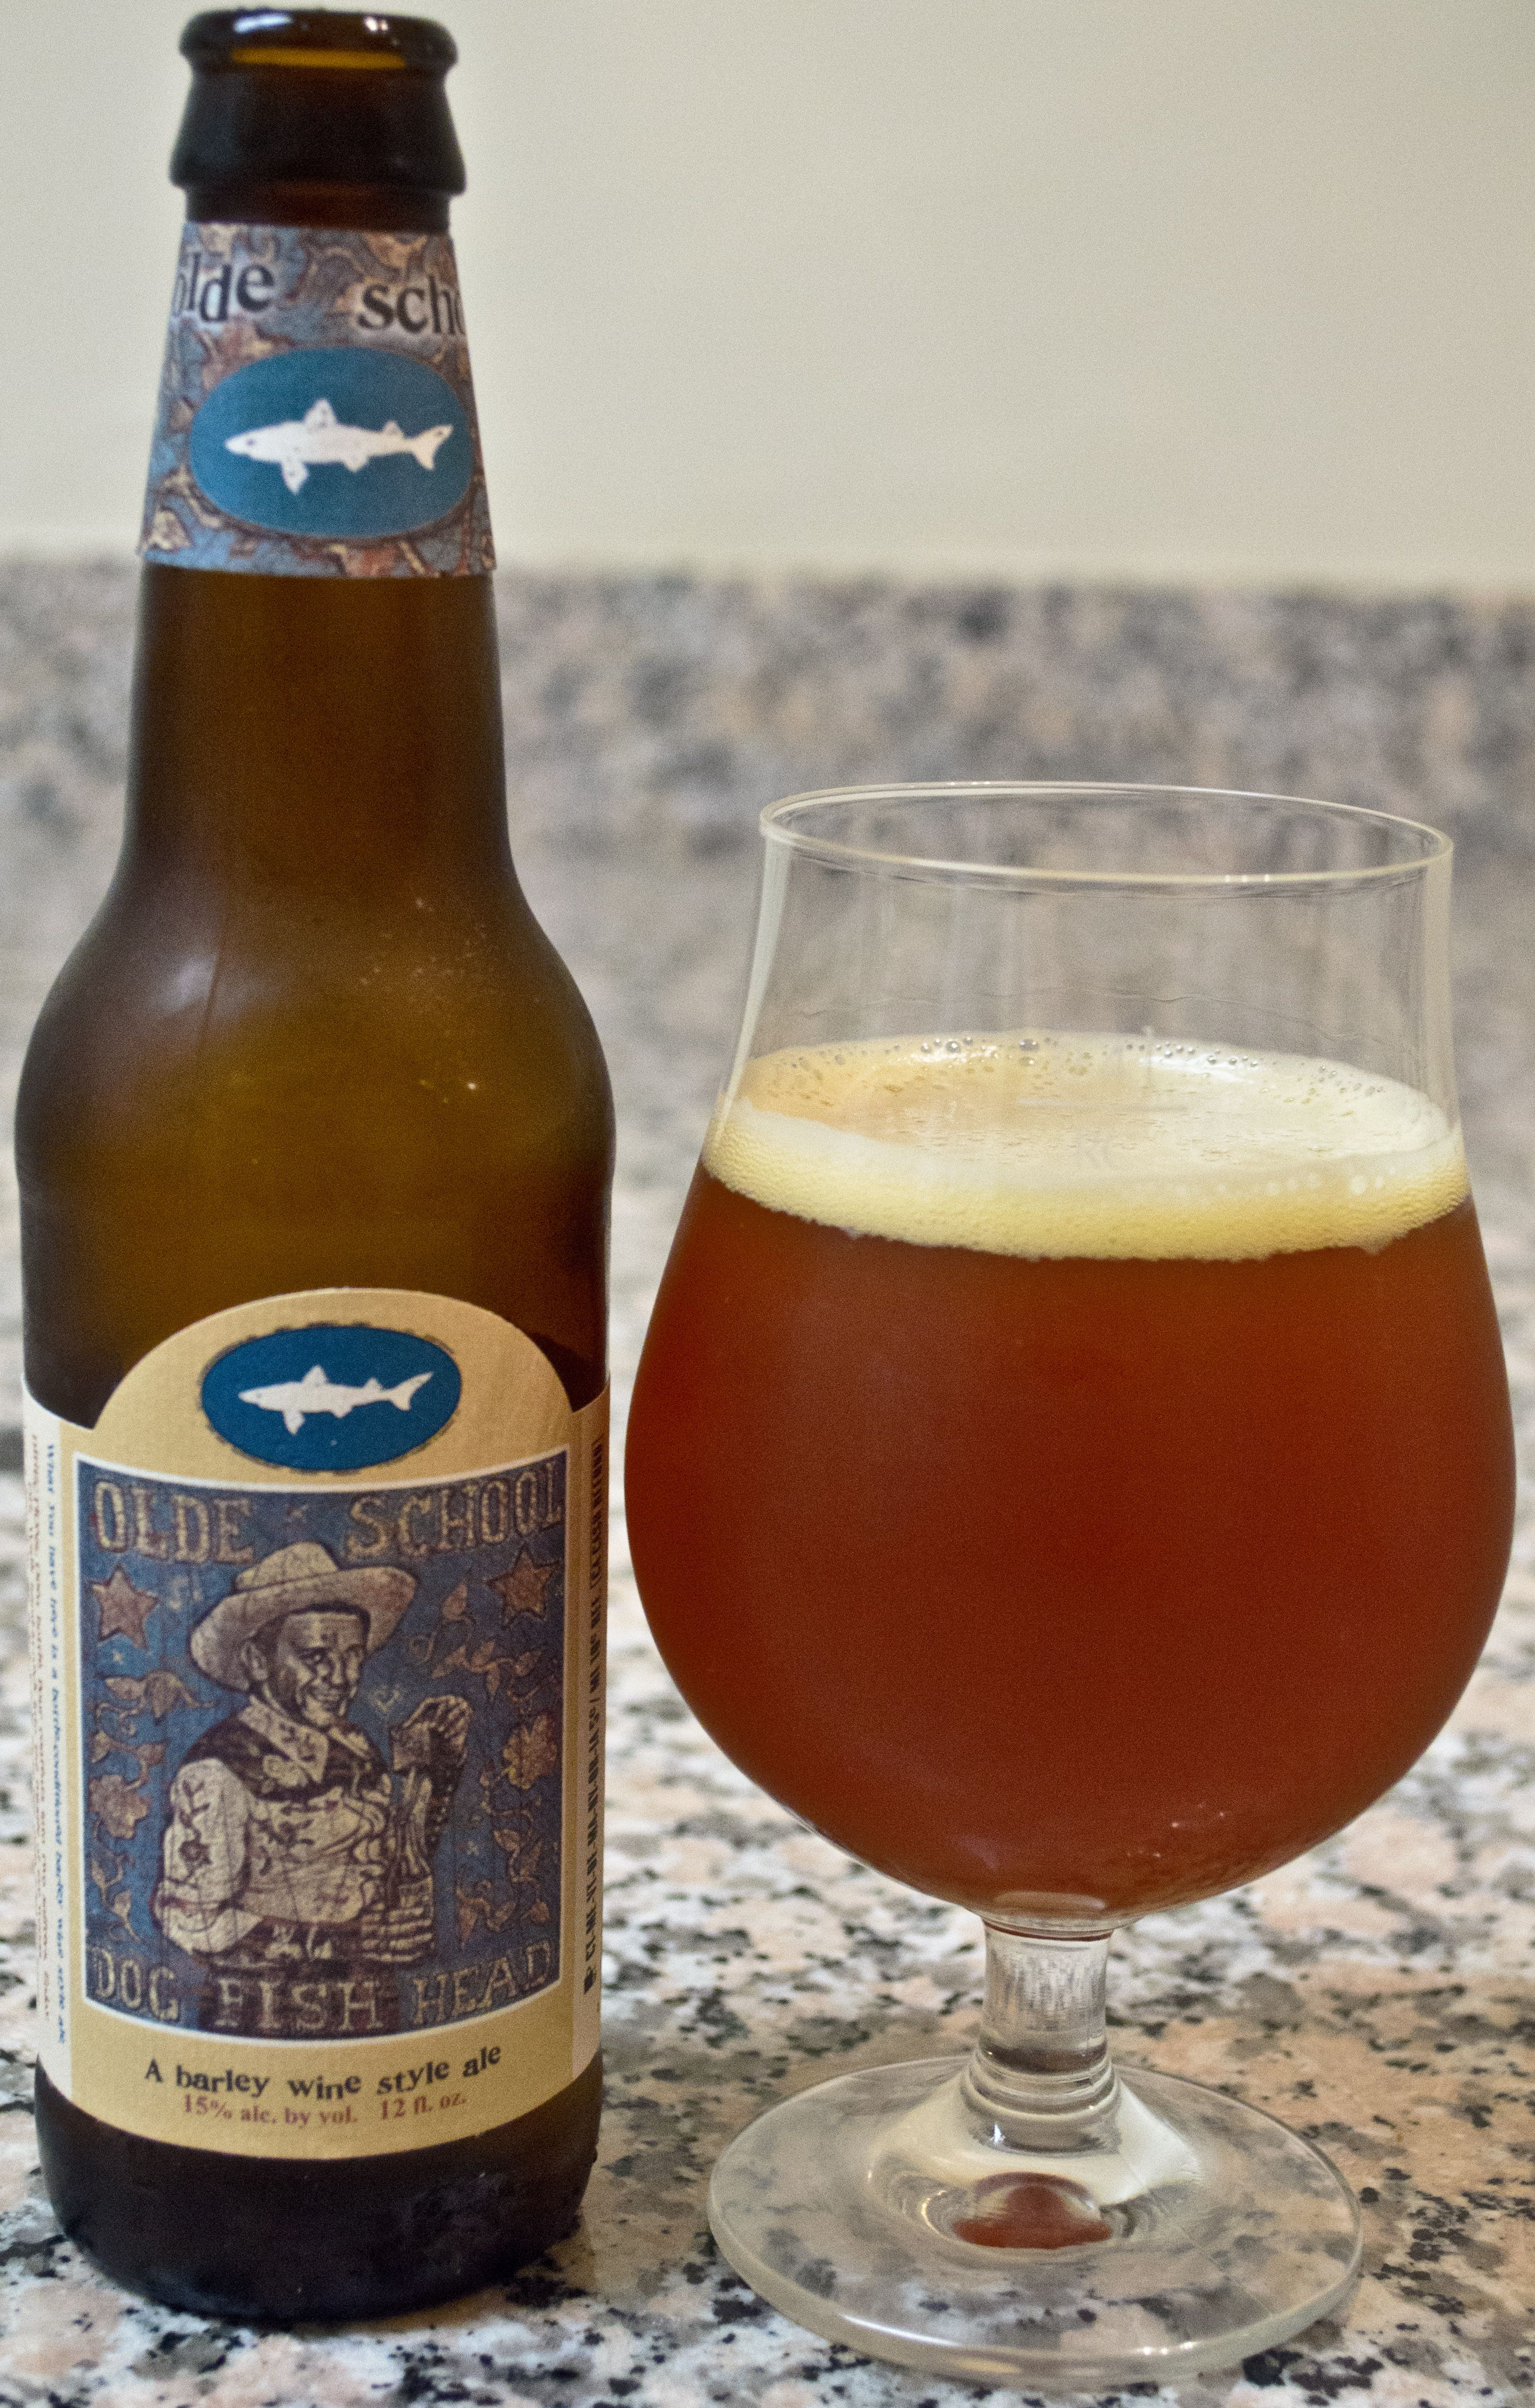 Dogfish Head's Olde School Barleywine - This is one really big beer that is super bold and strong from start to end. The malts and brown sugar flavor are really rich right off the bat, but the hops and other flavors, alongside the big body, find a way to contain the beer and give it a bit of balance. I think a good two years of age also did quite a bit of good for this one.